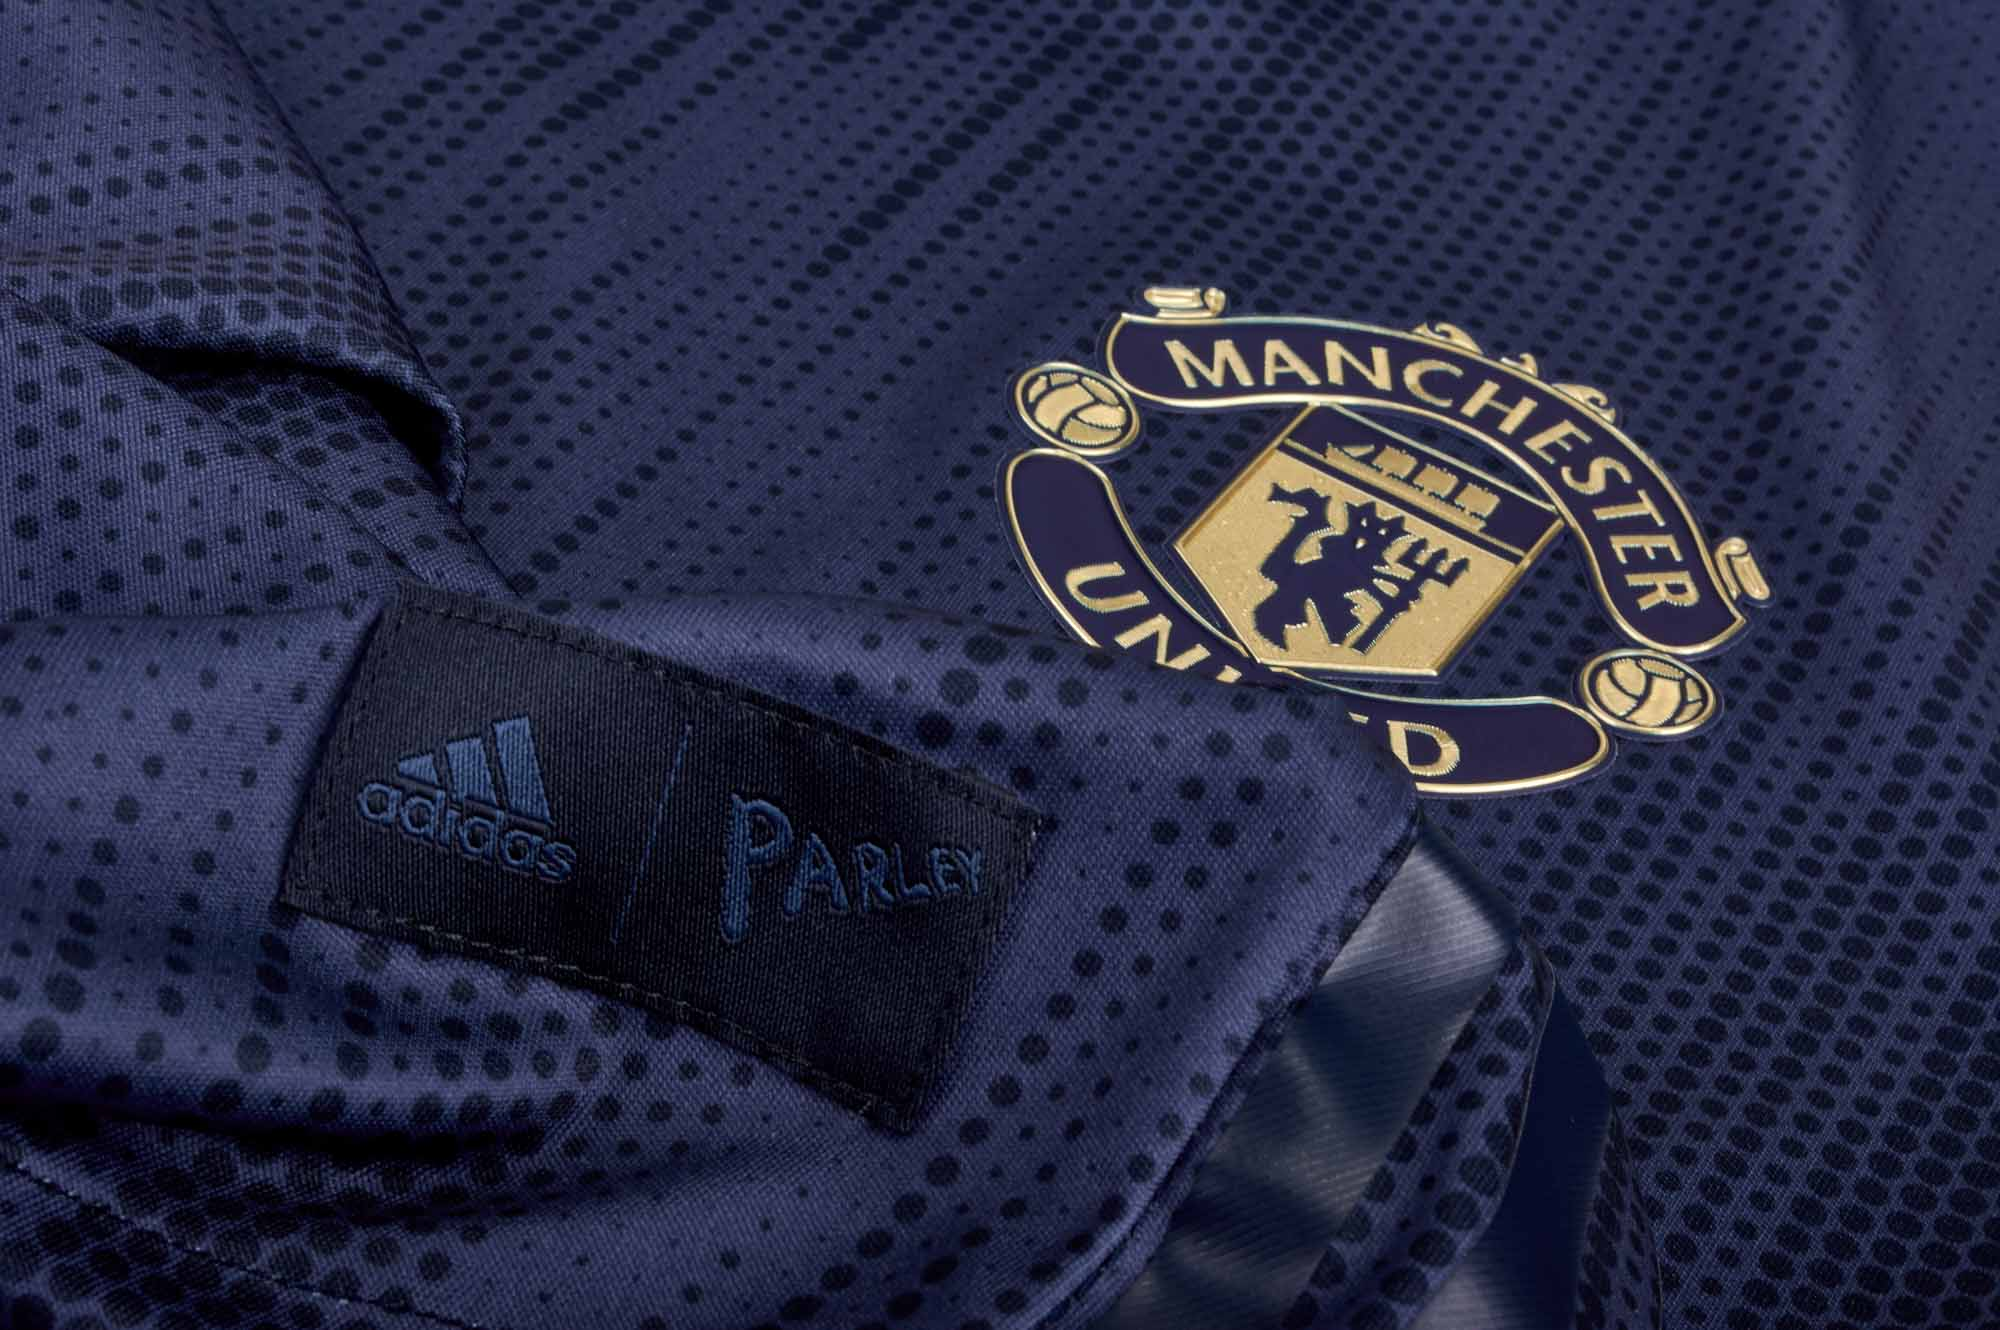 6e6ef7d17 ... Original Manchester United Full Sleeve Premium 3rd Kit Jersey and Shorts   Optional  2018- ...